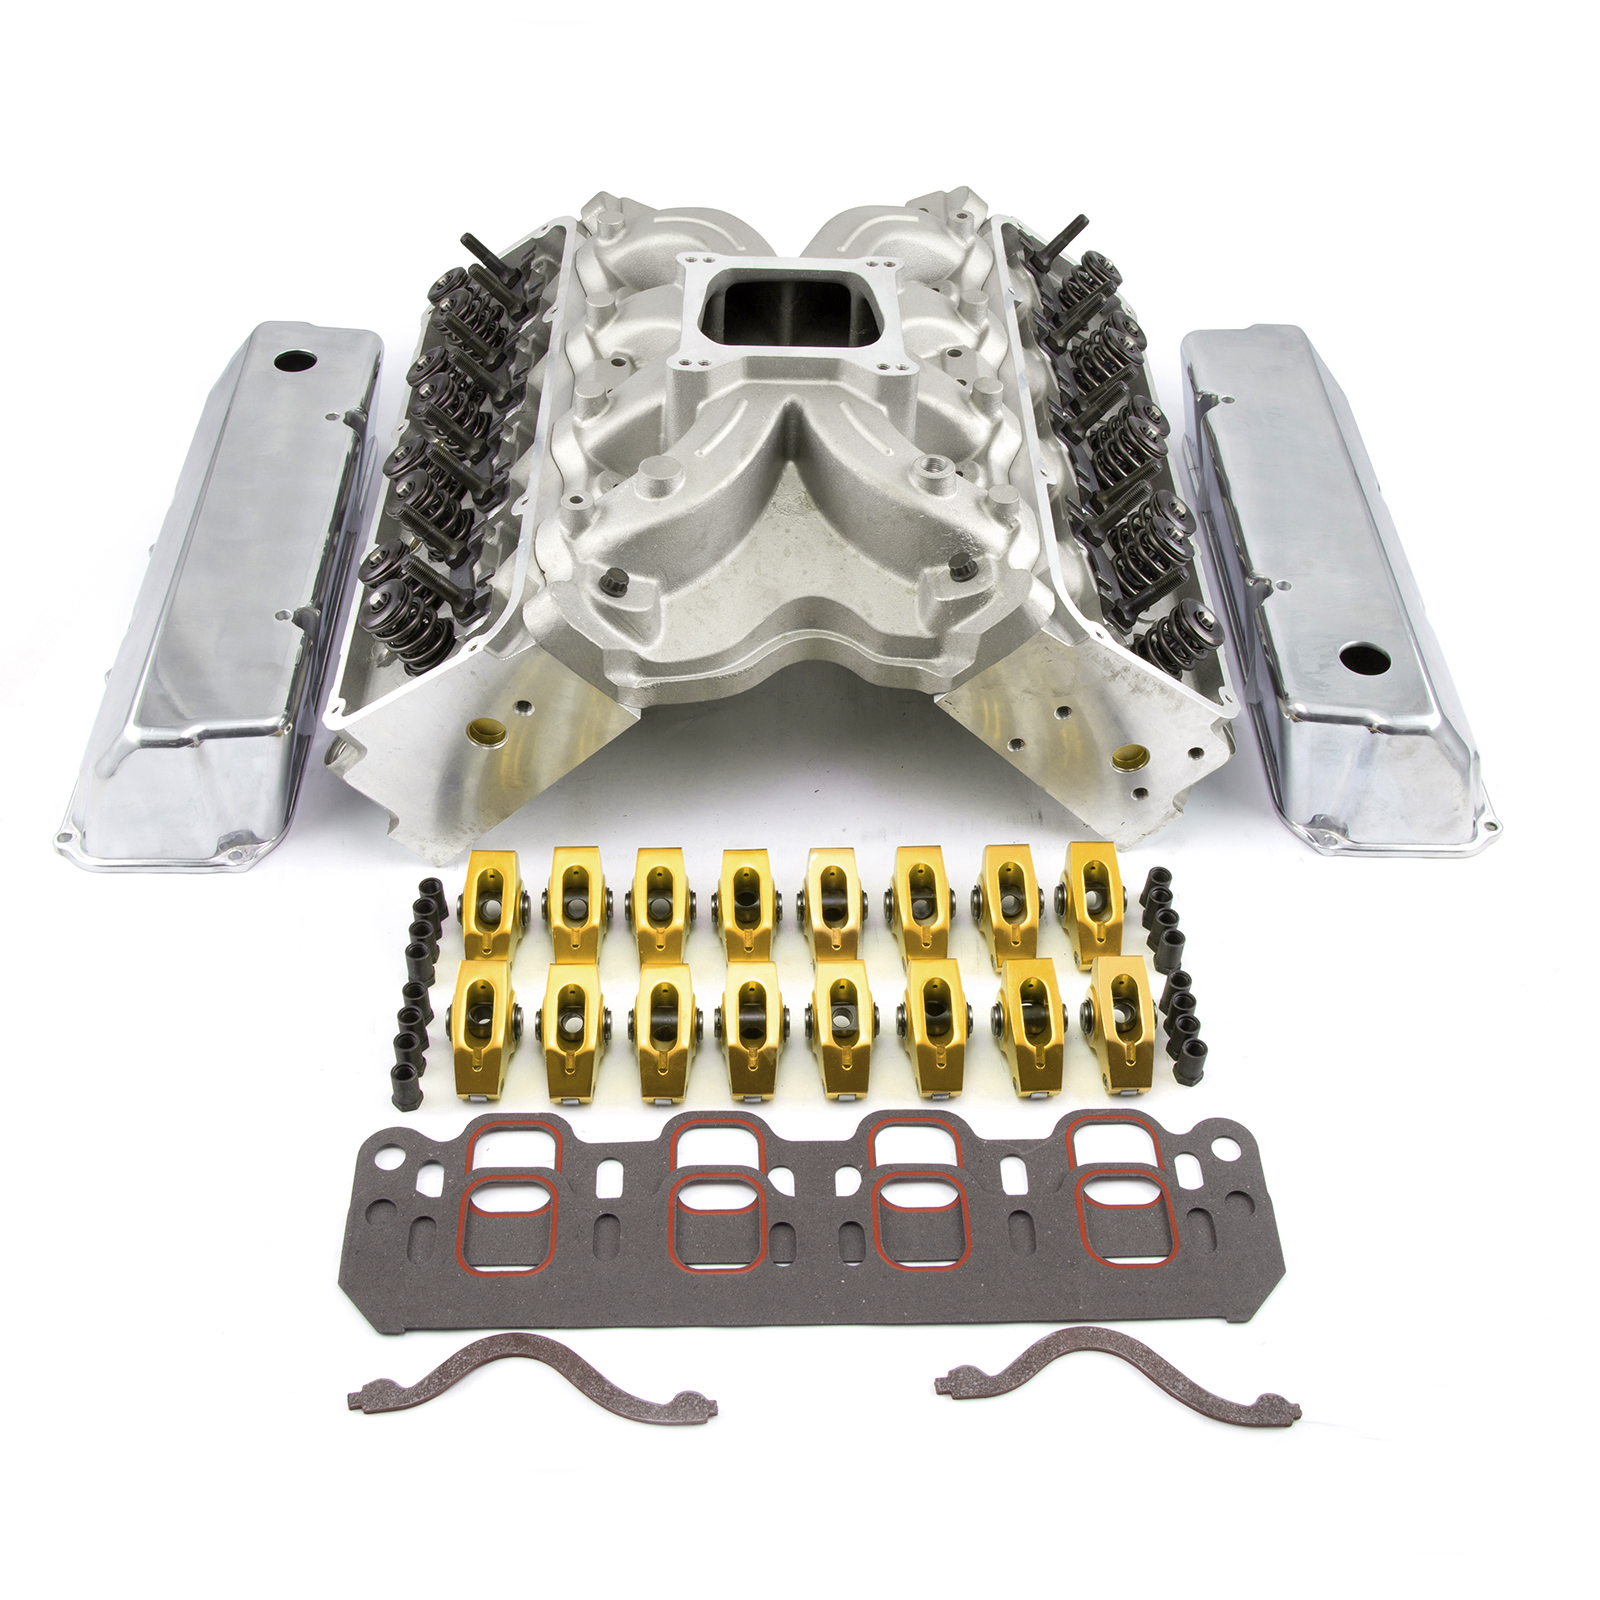 PCE® PCE435.1072 Ford 302 351C Cleveland CNC Solid-R Cylinder Head Top End Engine Combo Kit